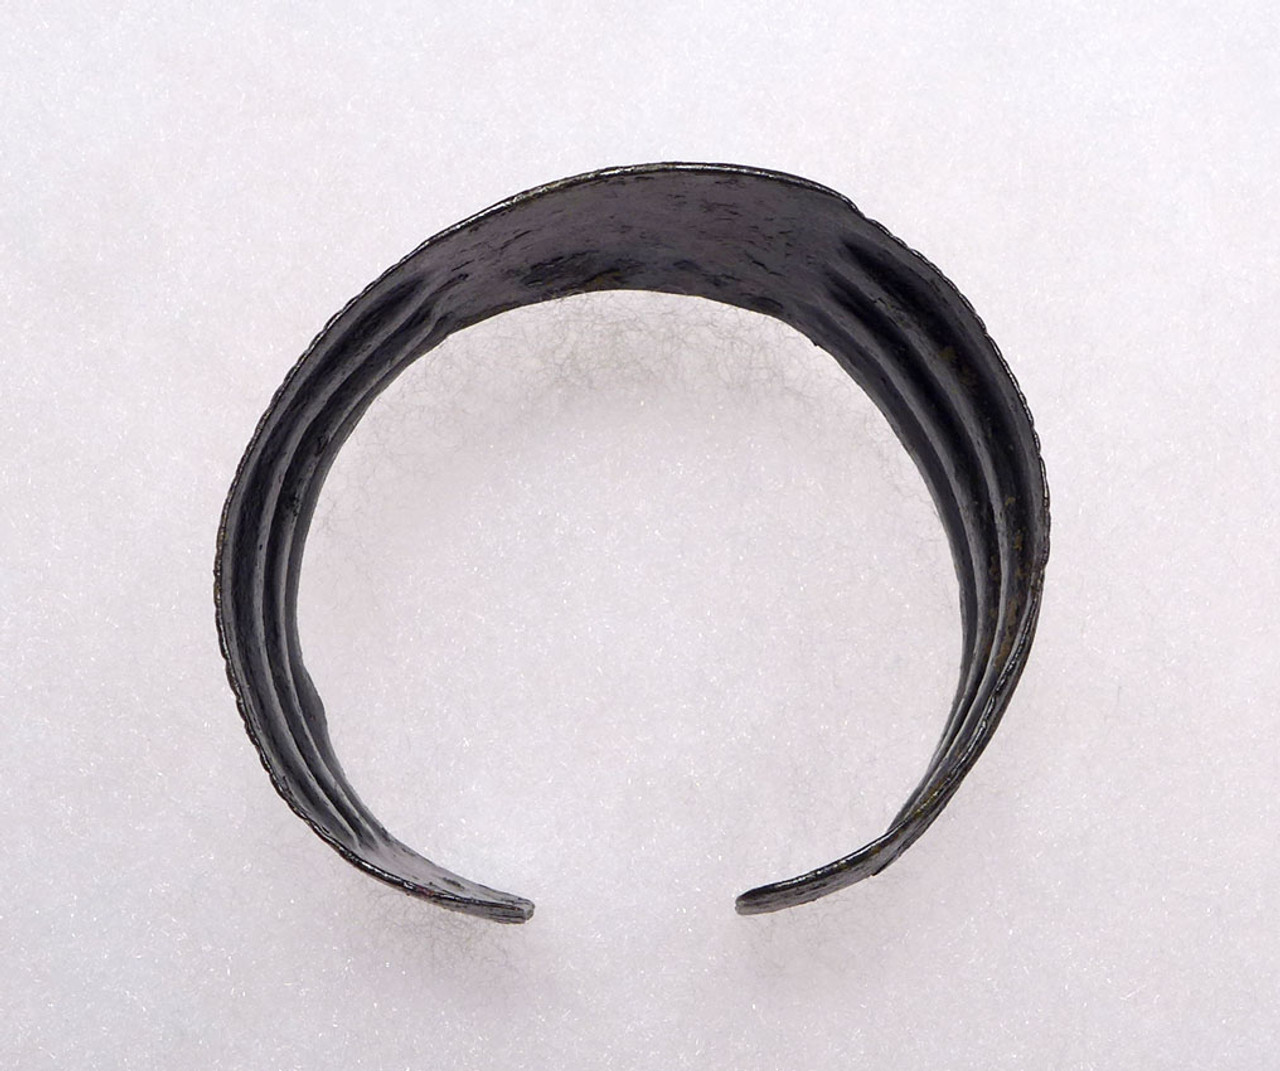 ANCIENT NEAR EASTERN HAMMERED DECORATIVE BRONZE BANGLE BRACELET *NE185